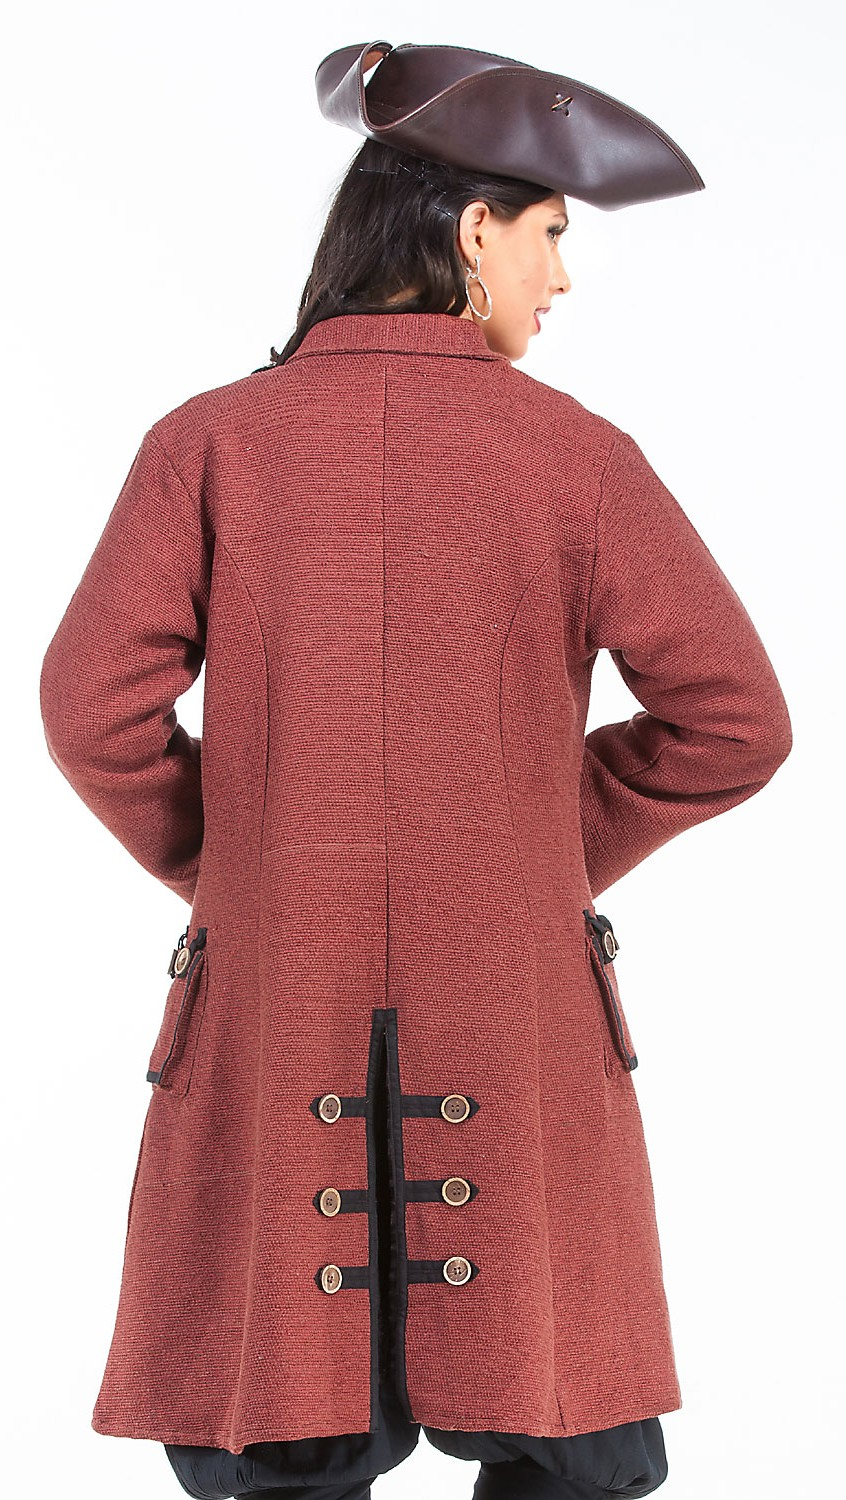 Back view of Capt. Delahaye Pirate Captain Coat, faded red with wood buttons